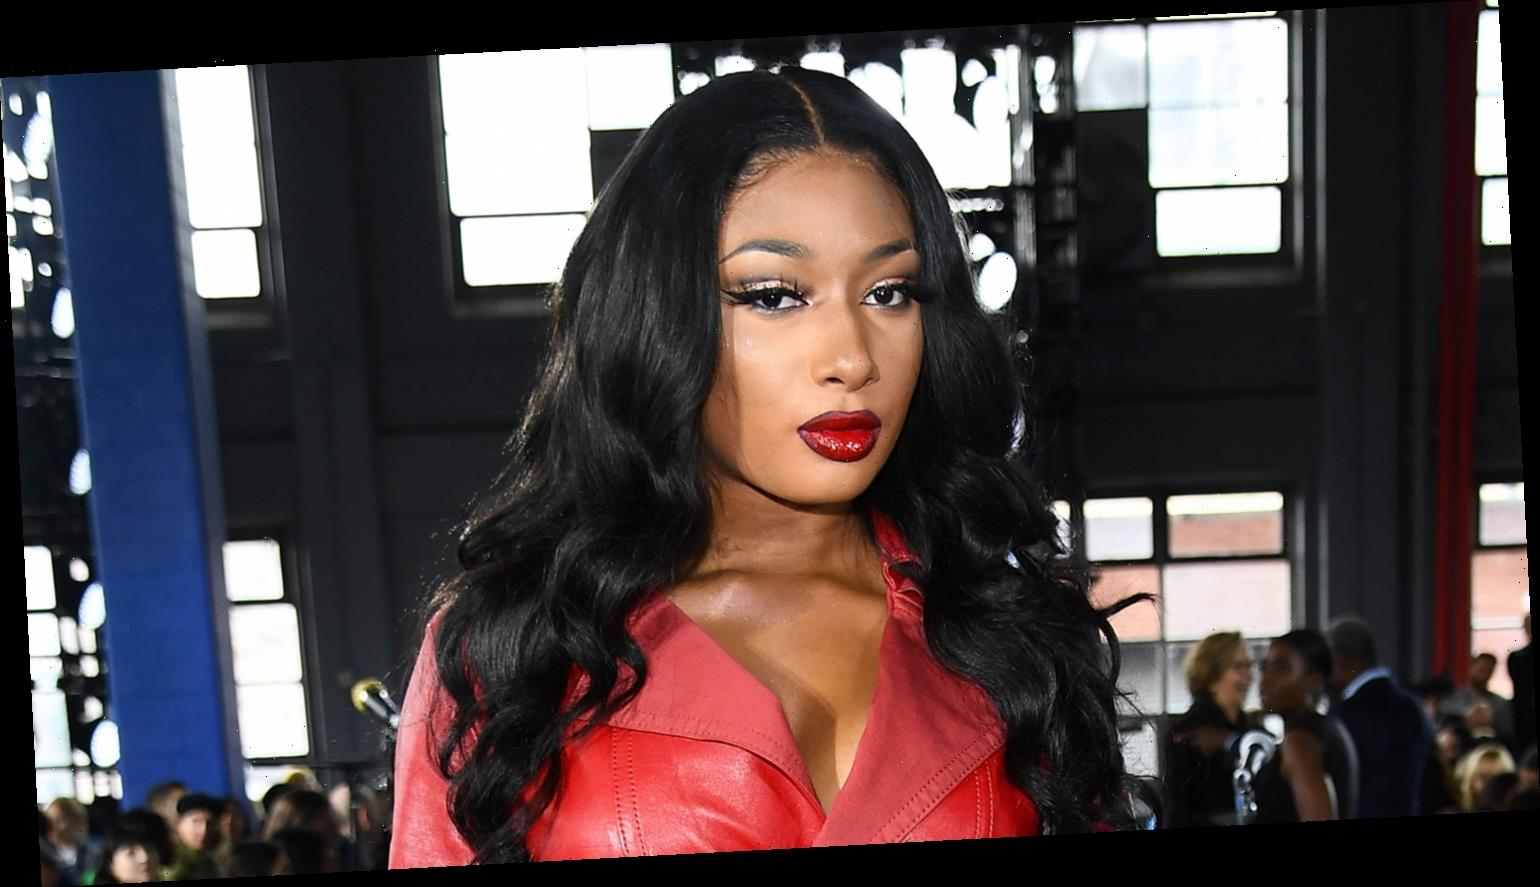 Megan Thee Stallion Reveals Why She's Staying in College Despite Rising Fame